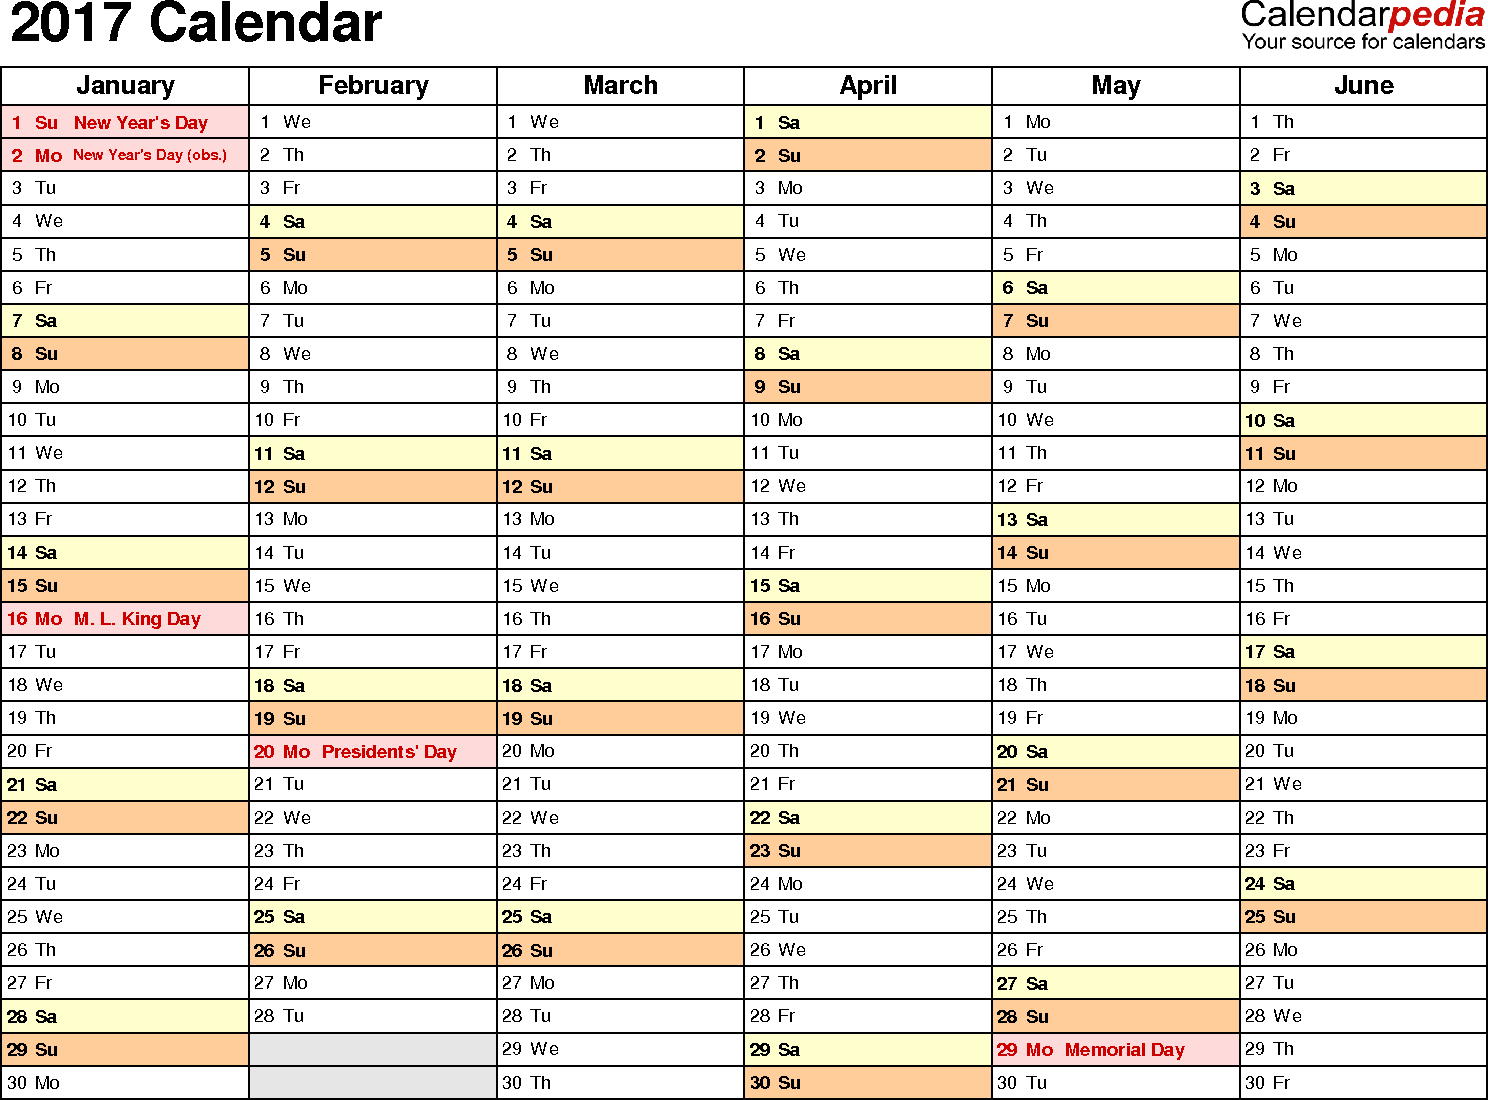 Ediblewildsus  Nice  Calendar  Download  Free Printable Excel Templates Xls With Extraordinary Template   Calendar For Excel Months Horizontally  Pages Landscape Orientation With Lovely Excel To Pdf Converter Free Also Excel Web Services In Addition If Else Statements In Excel And Excel Free Templates As Well As Online Excel Classes Free Additionally Excel Merge Spreadsheets From Calendarpediacom With Ediblewildsus  Extraordinary  Calendar  Download  Free Printable Excel Templates Xls With Lovely Template   Calendar For Excel Months Horizontally  Pages Landscape Orientation And Nice Excel To Pdf Converter Free Also Excel Web Services In Addition If Else Statements In Excel From Calendarpediacom